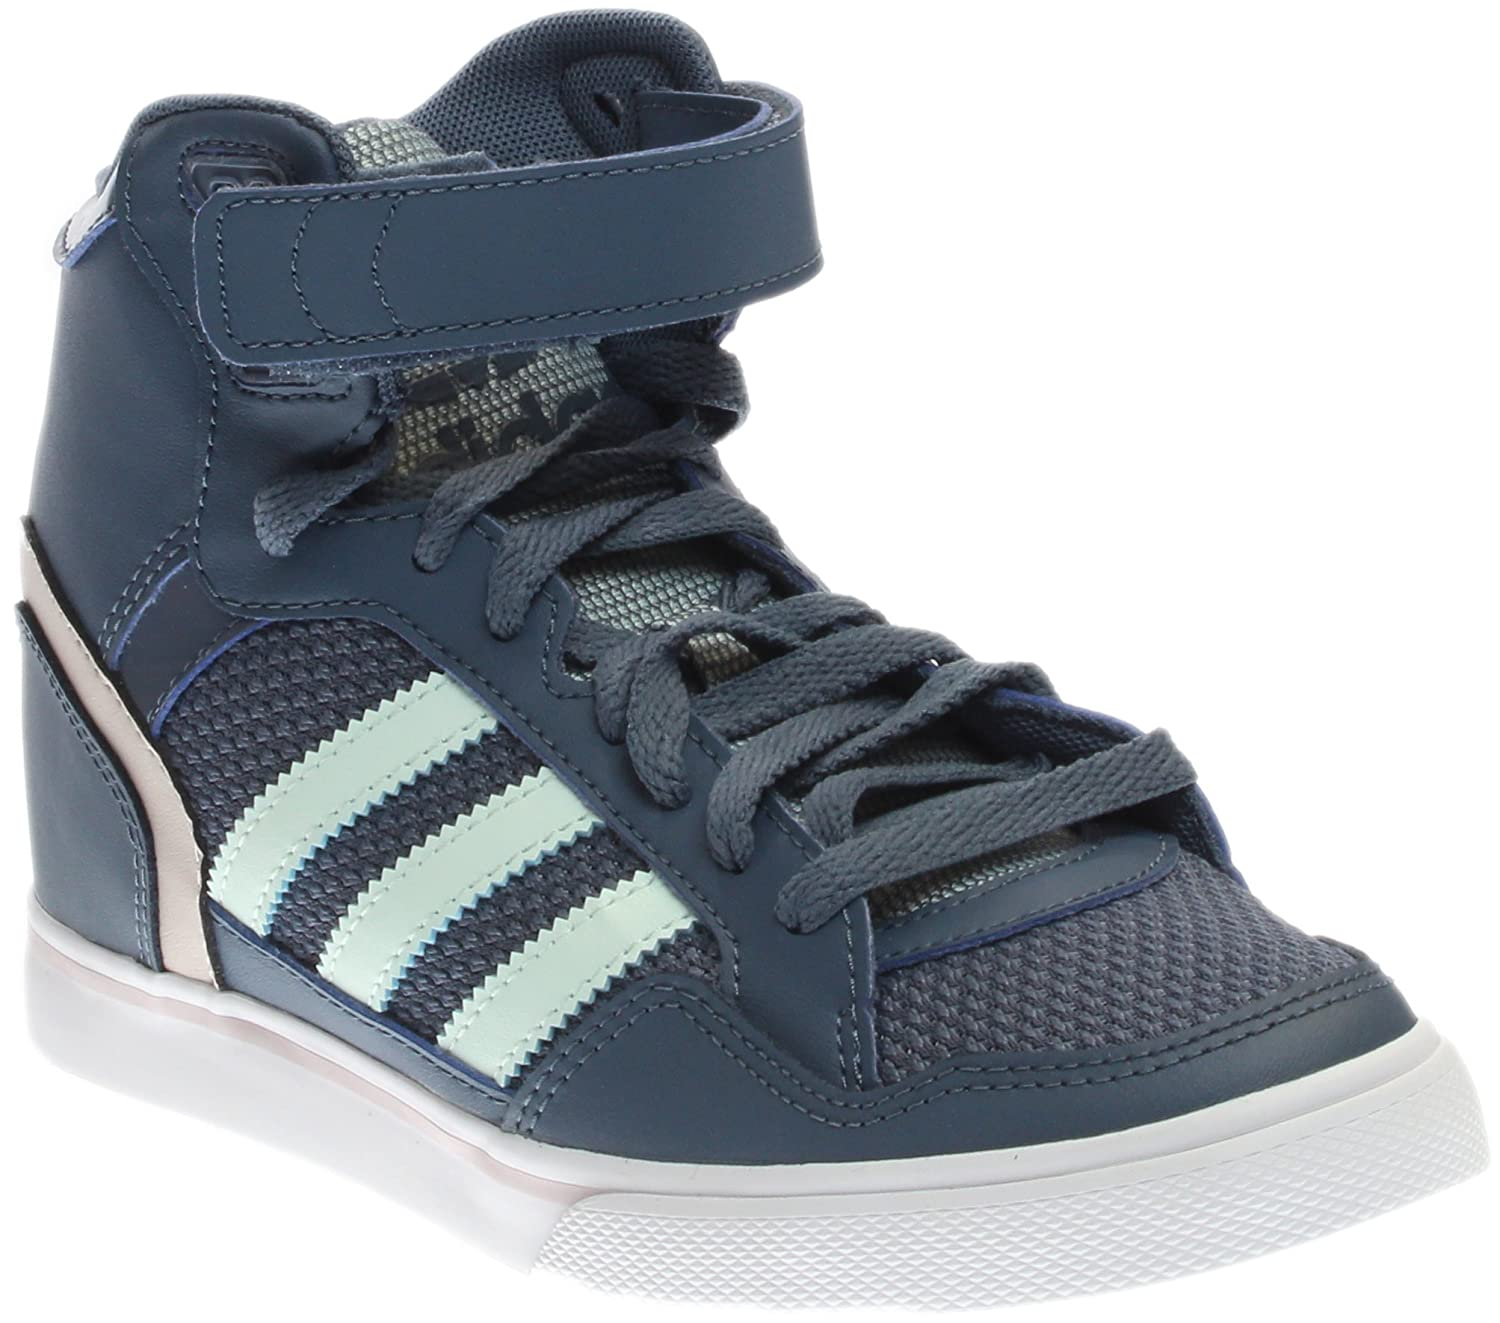 new product a839f 1c467 ... ireland adidas neo label adidas originals womens extaball w fashion  sneaker b9da2 4c775